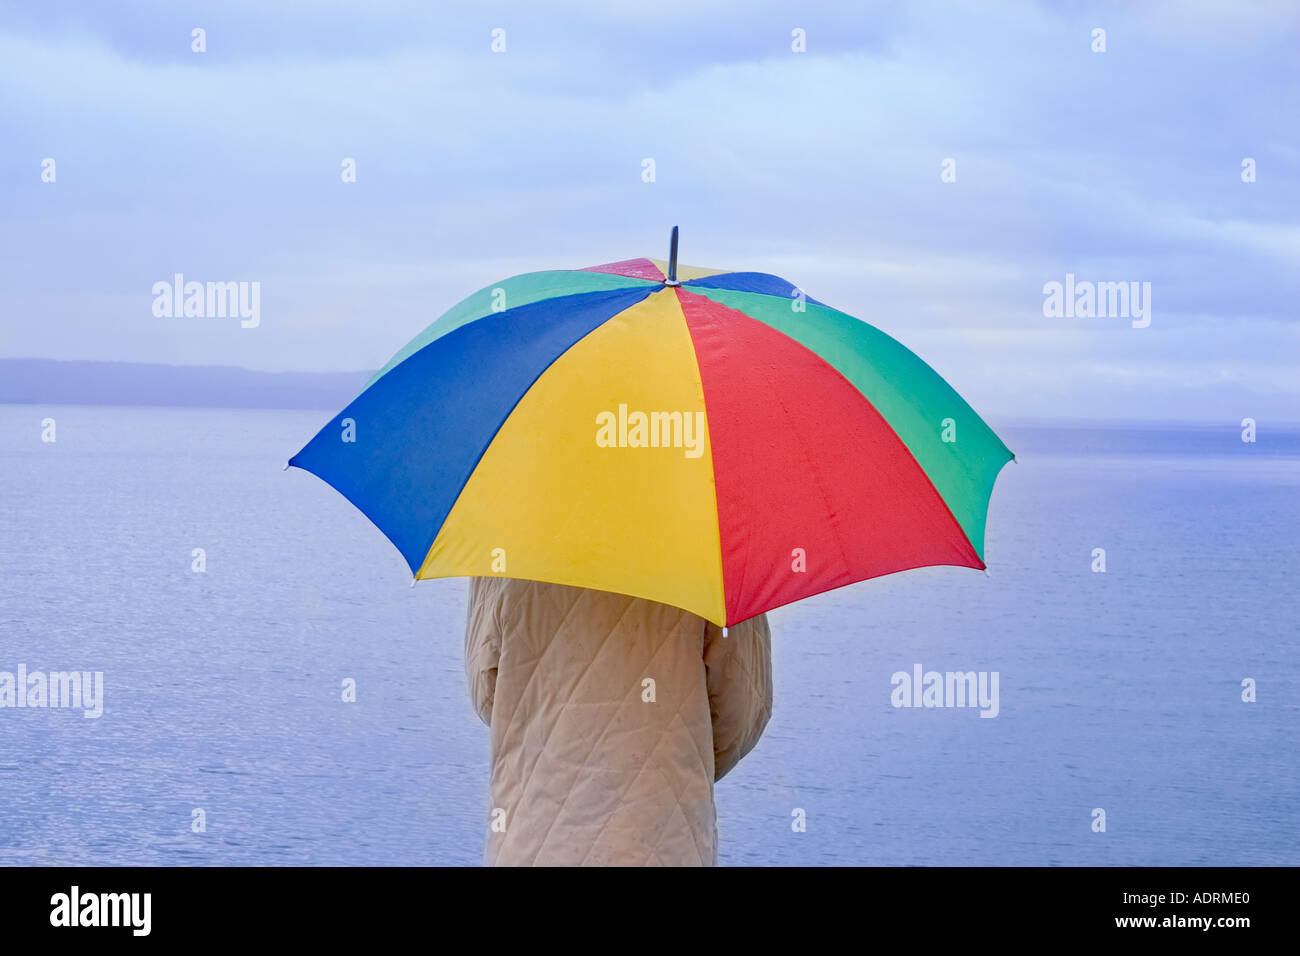 Woman with umbrella looking at a lake at foul weather - Stock Image